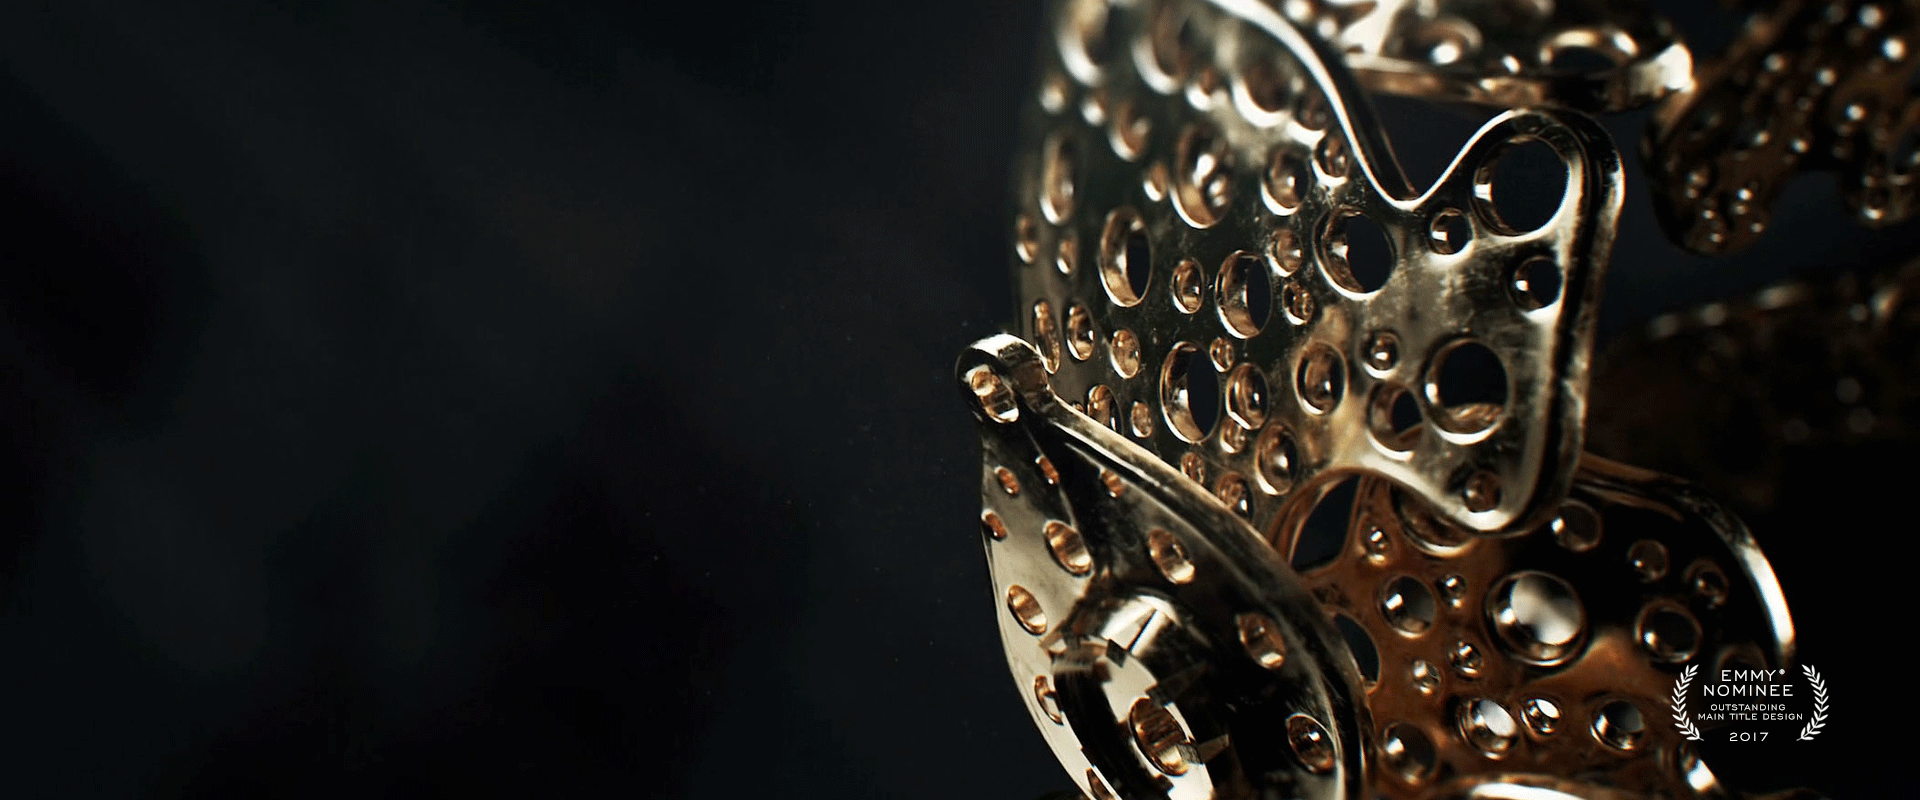 THE CROWN — Main Title Sequence